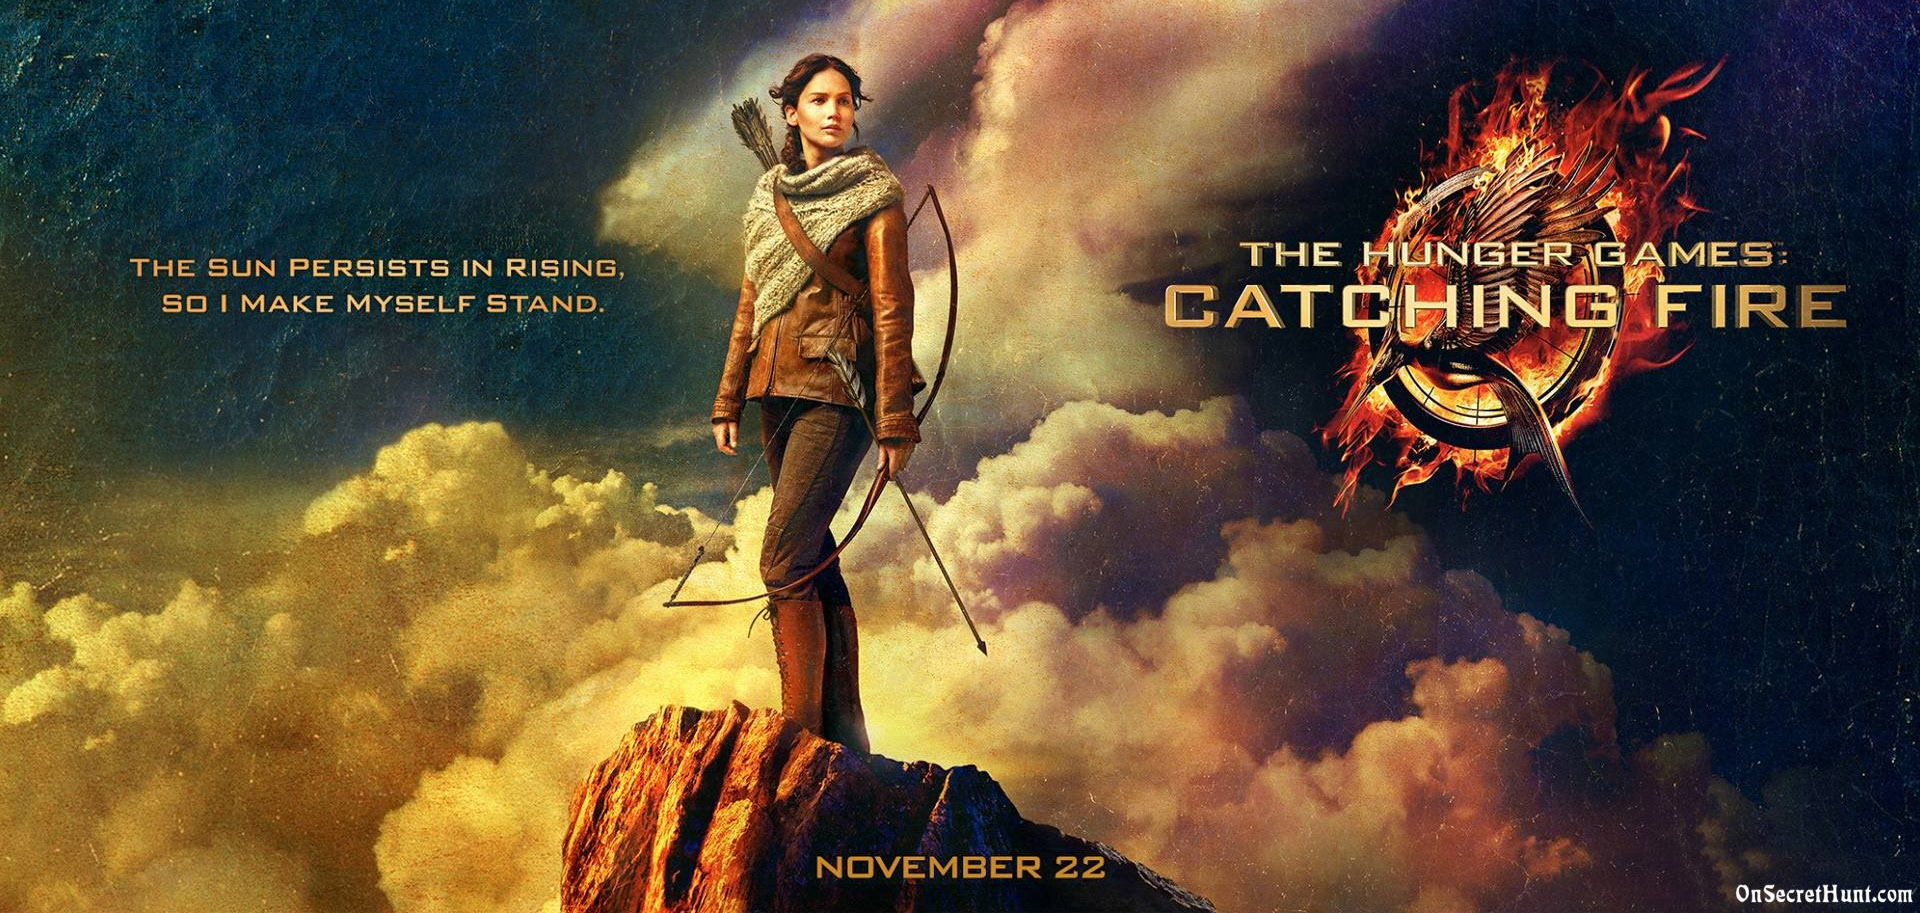 Alumni work on Catching Fire